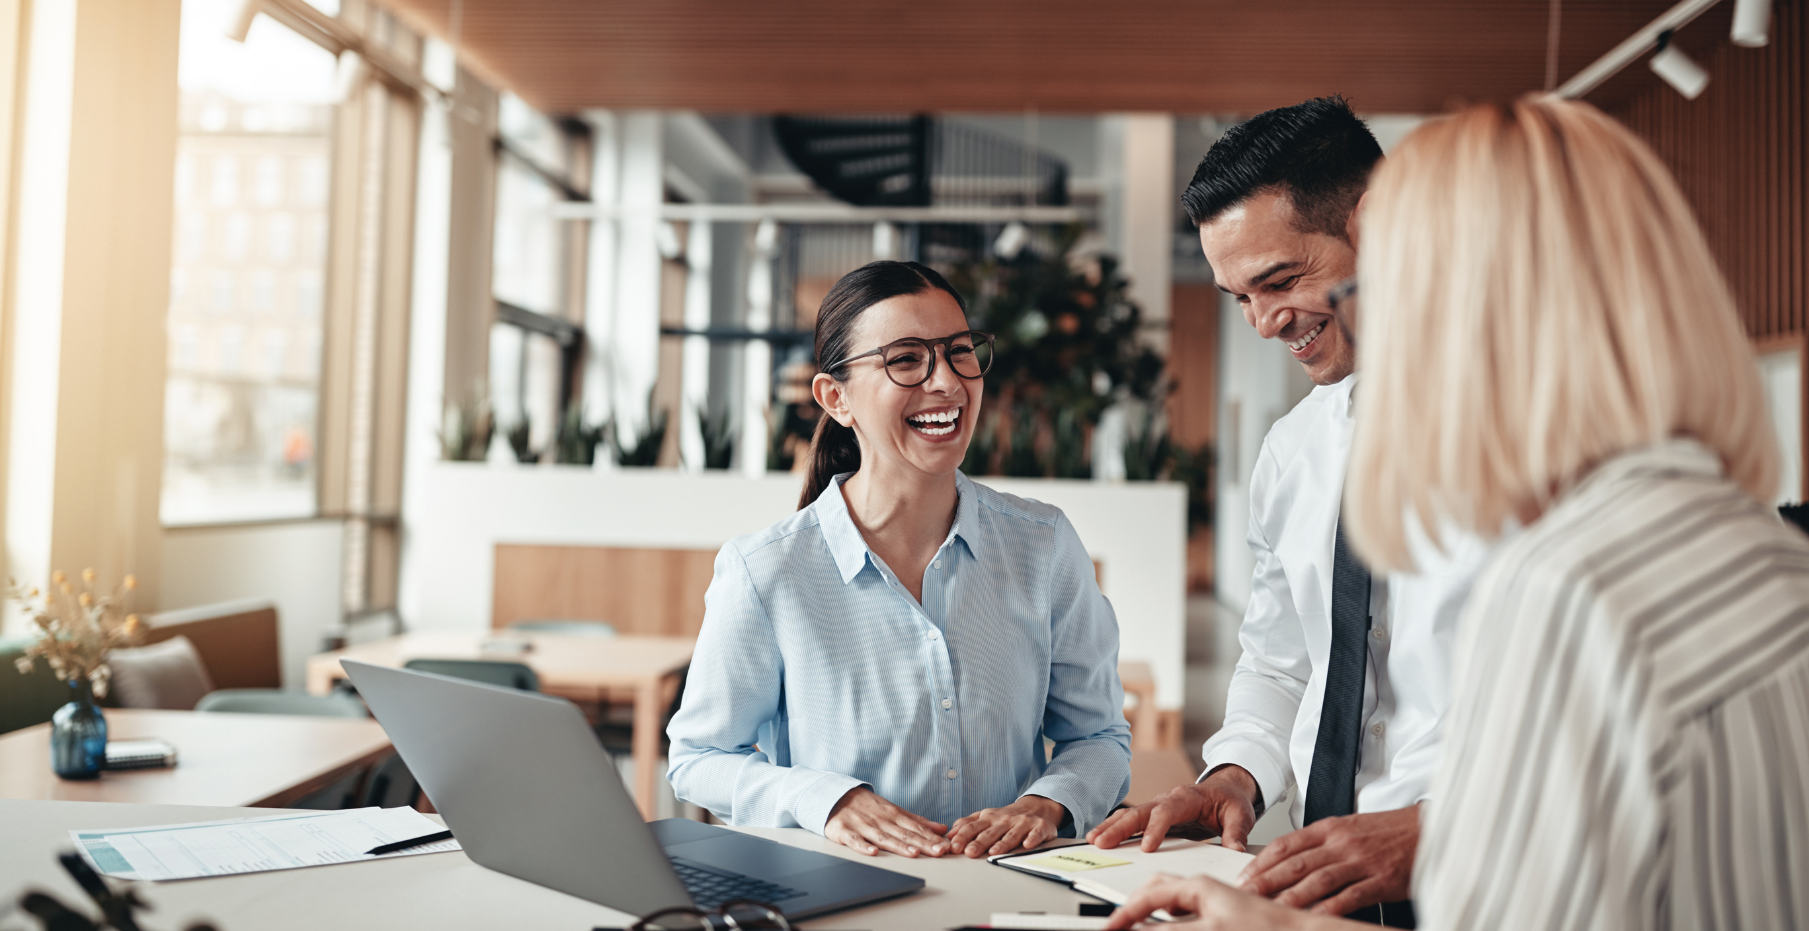 6 Top Trends for Employee Experience in 2021